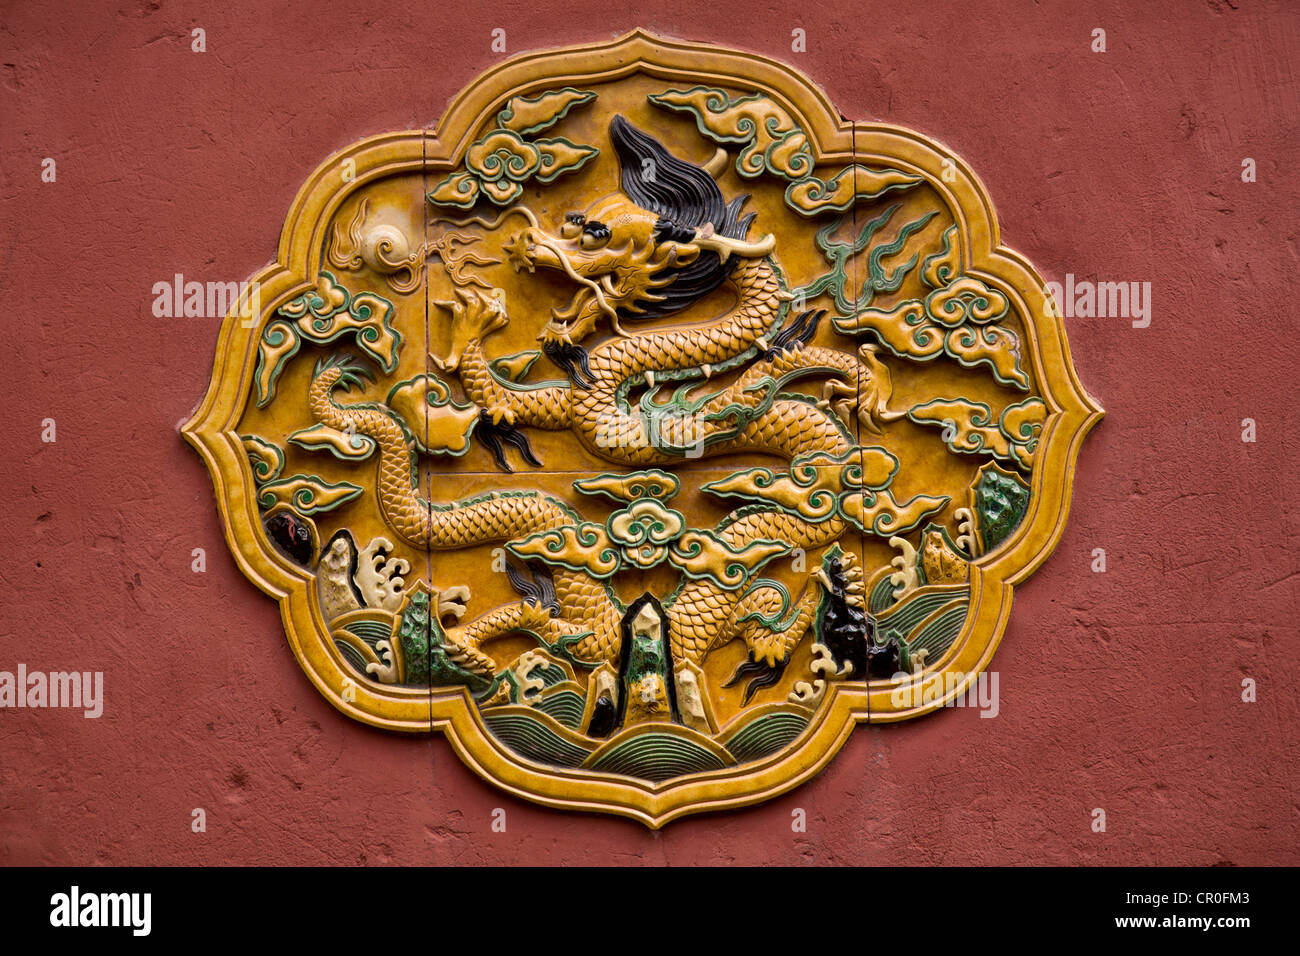 A traditional glazed ceramic wall motif decorates a wall in the Forbidden City  Beijing, People's Republic of - Stock Image